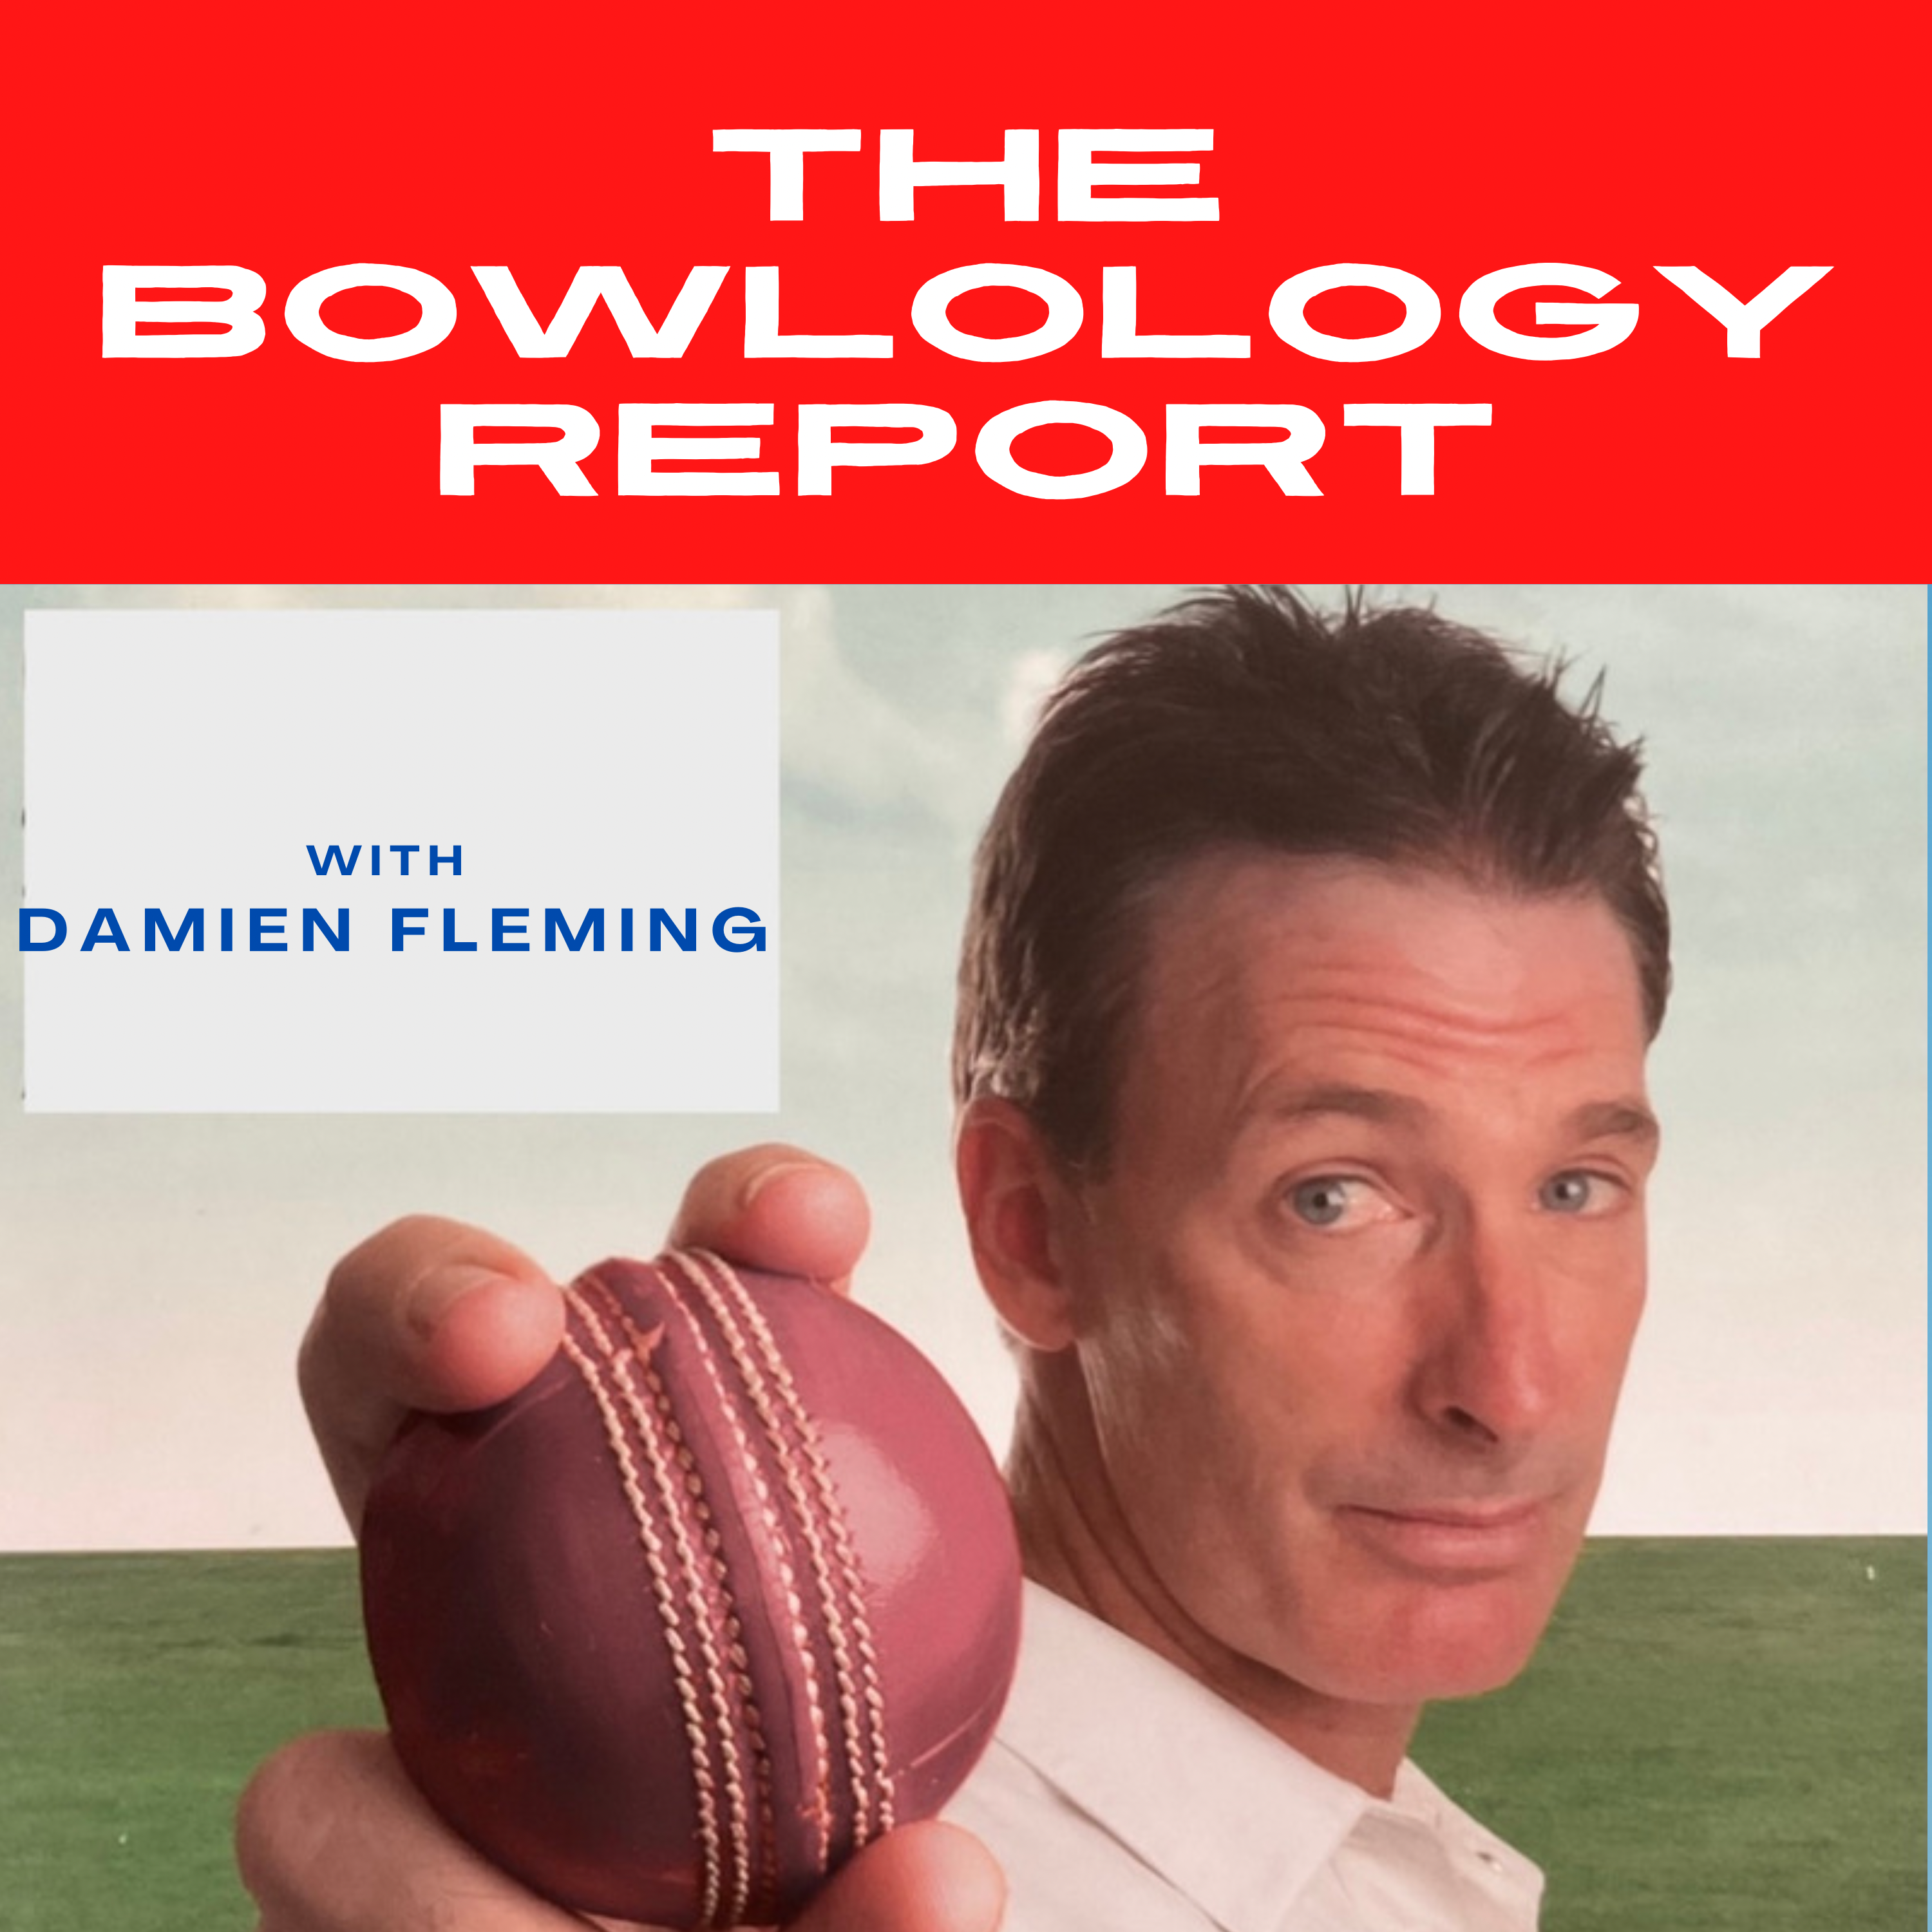 The Bowlology Report